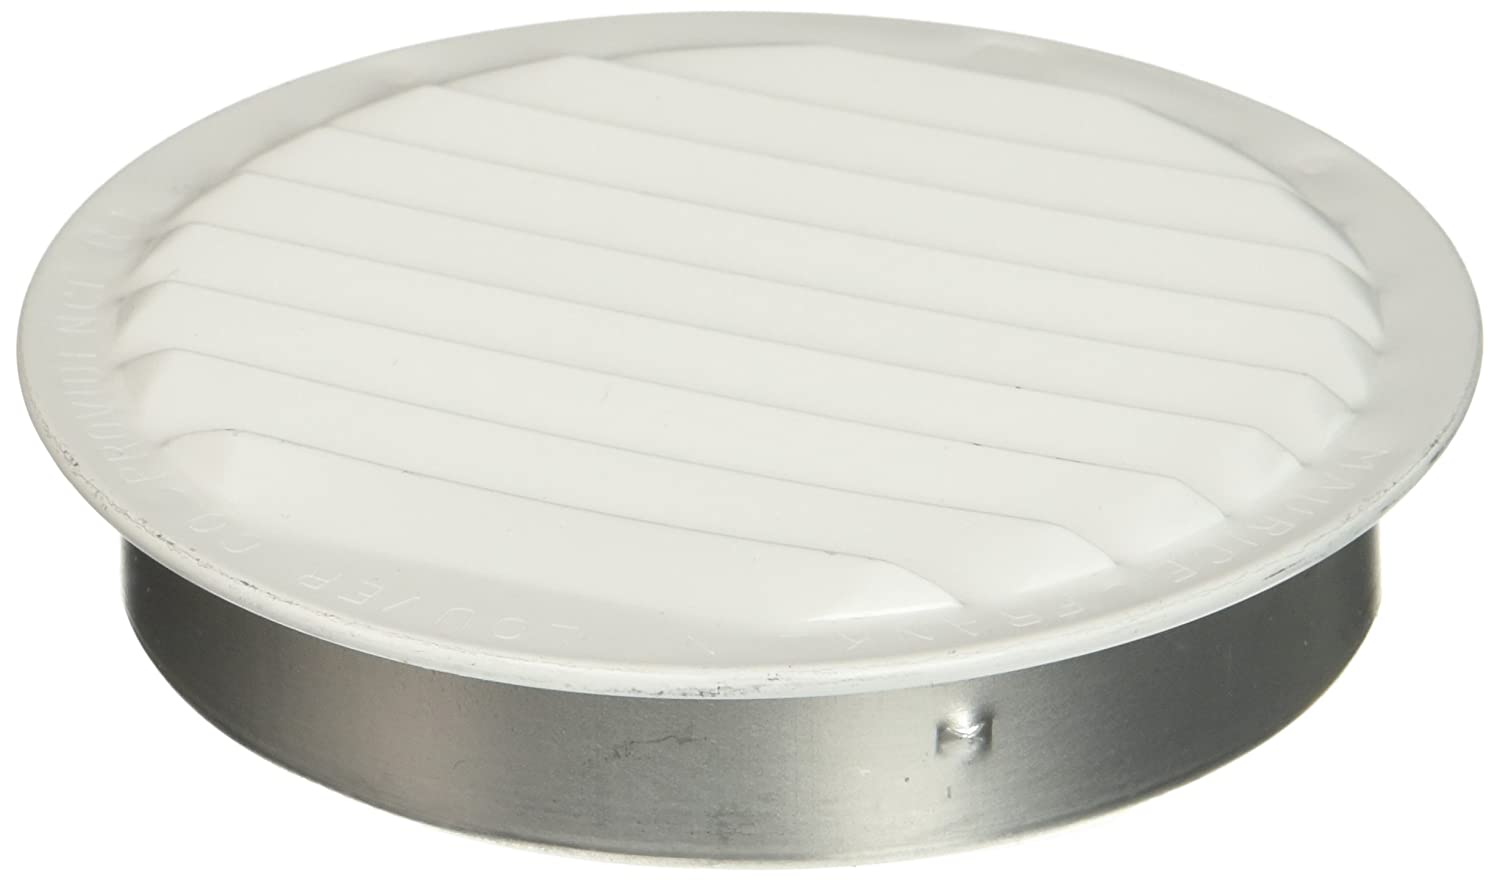 Maurice Franklin Louver RLW 100 4 4 Inch Mini Round Aluminum Insect Proof Mini Louvers With Screen White Pack of 4